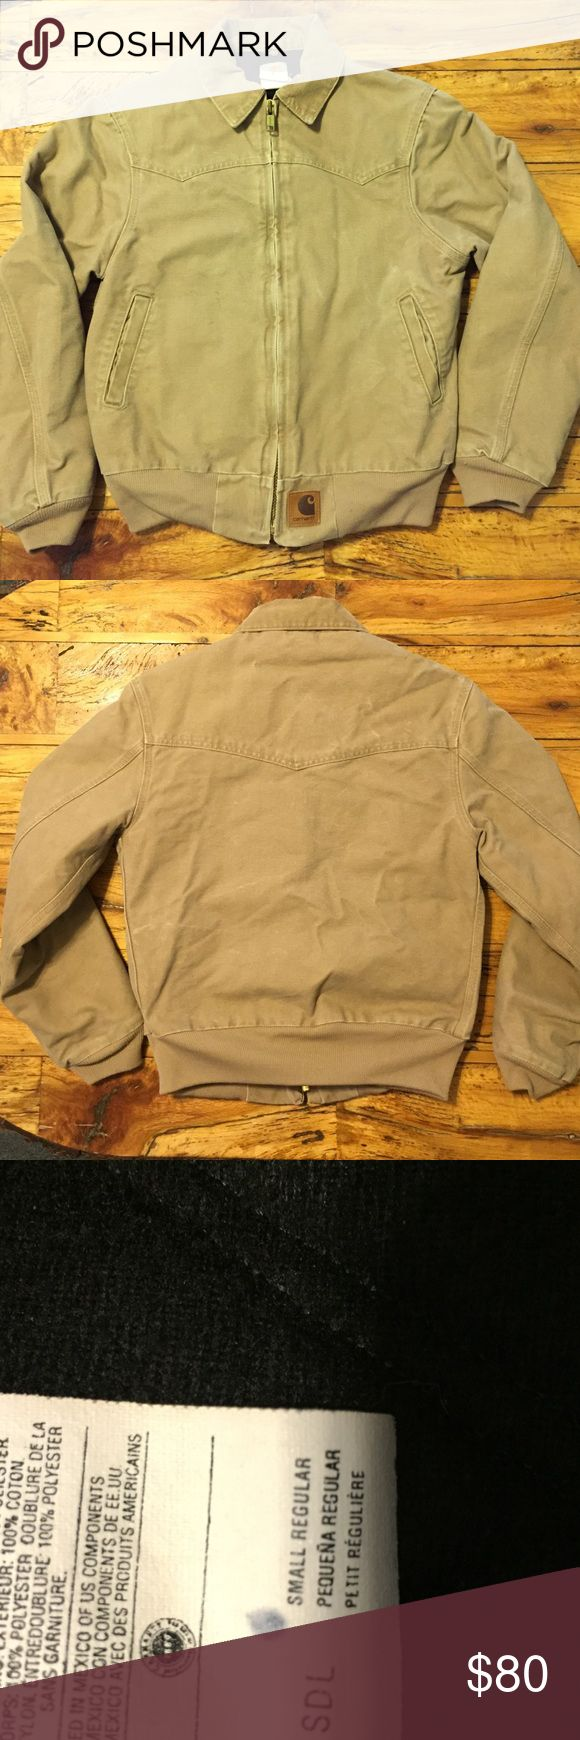 🌽FLASH SALE: Carhartt Jacket (🌽FLASH SALE: was previously listed at $45!) Basically like new. Super warm. No tears or stains. Nonsmoking home. Feel free to make an offer. This jacket can withstand anything. Carhartt Jackets & Coats Utility Jackets